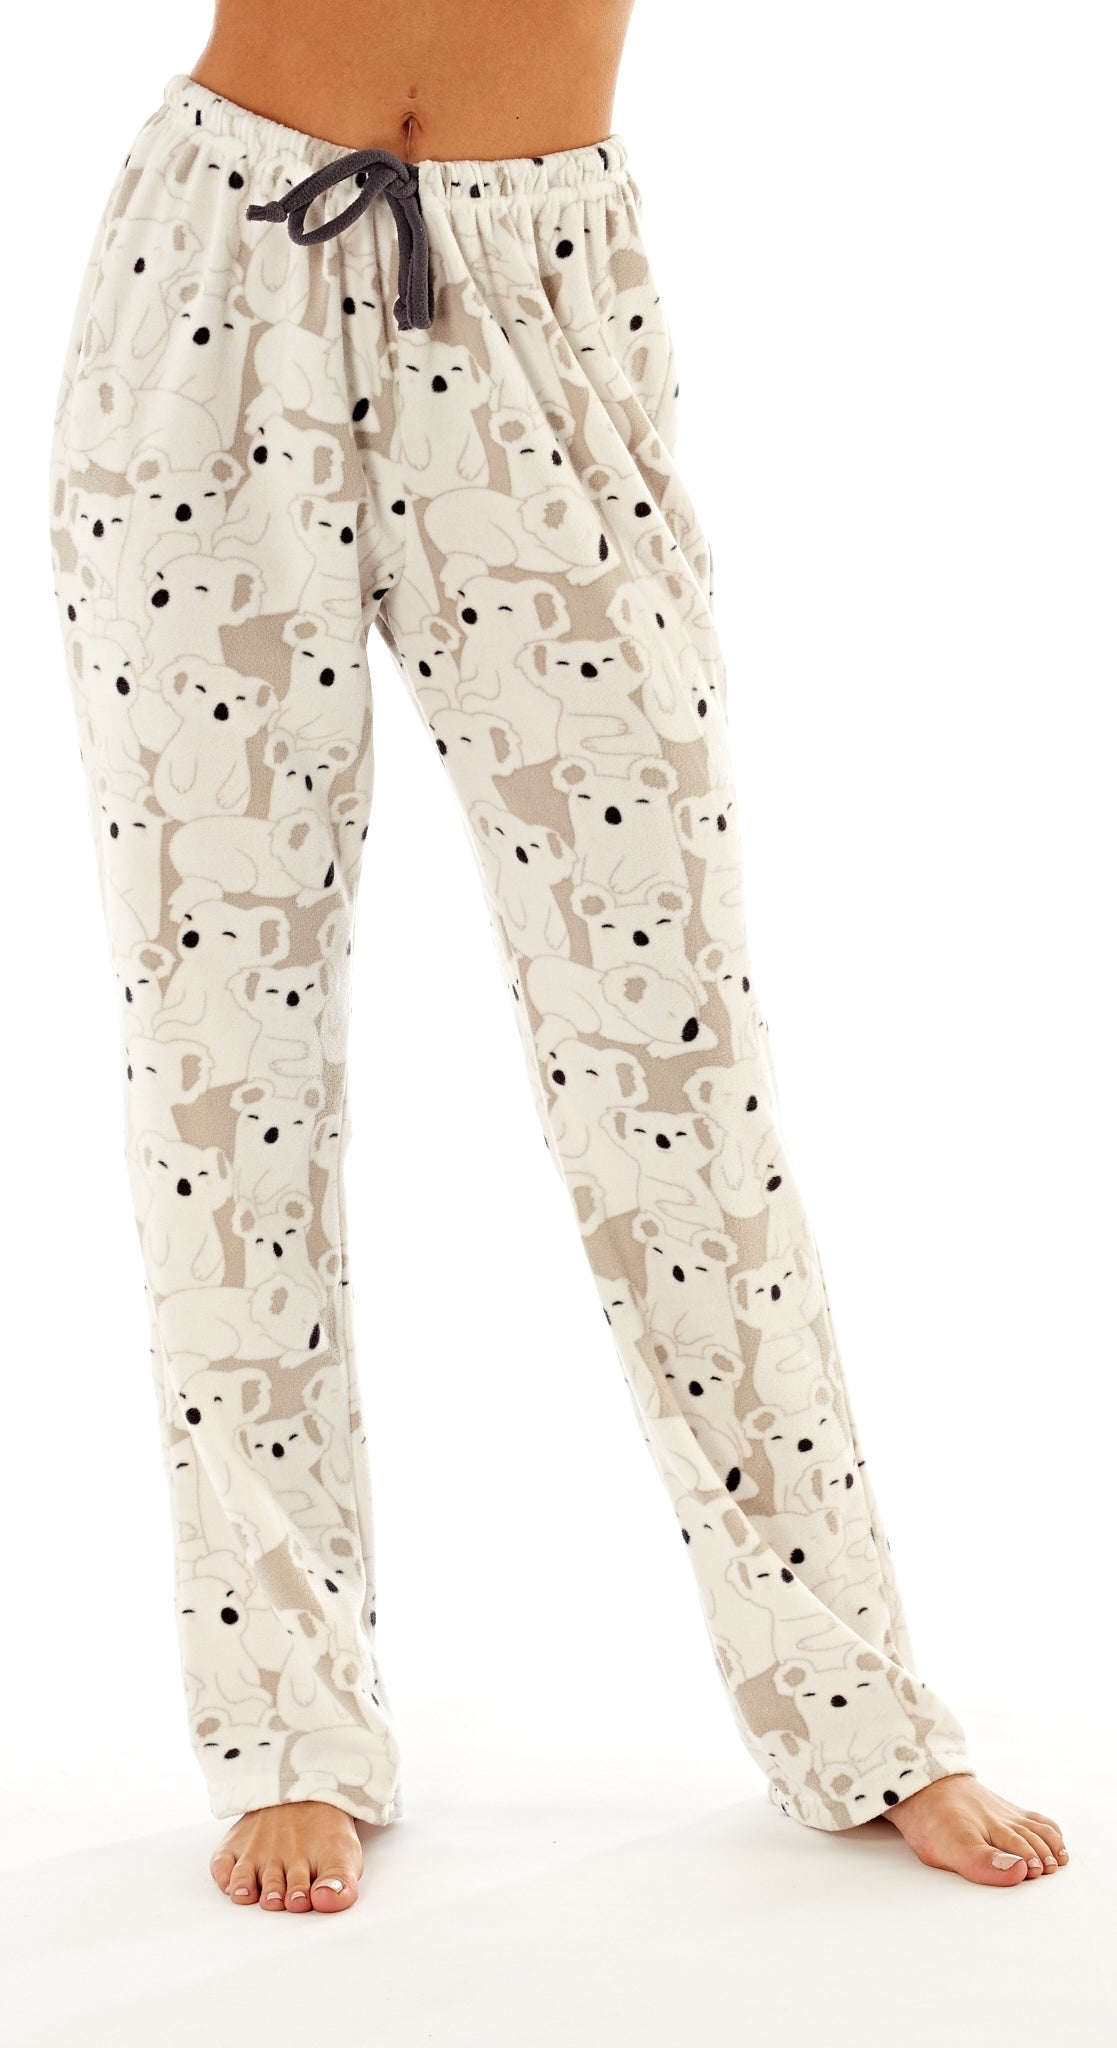 Octave Ladies Loungewear Pants Pyjama Bottoms - Koala